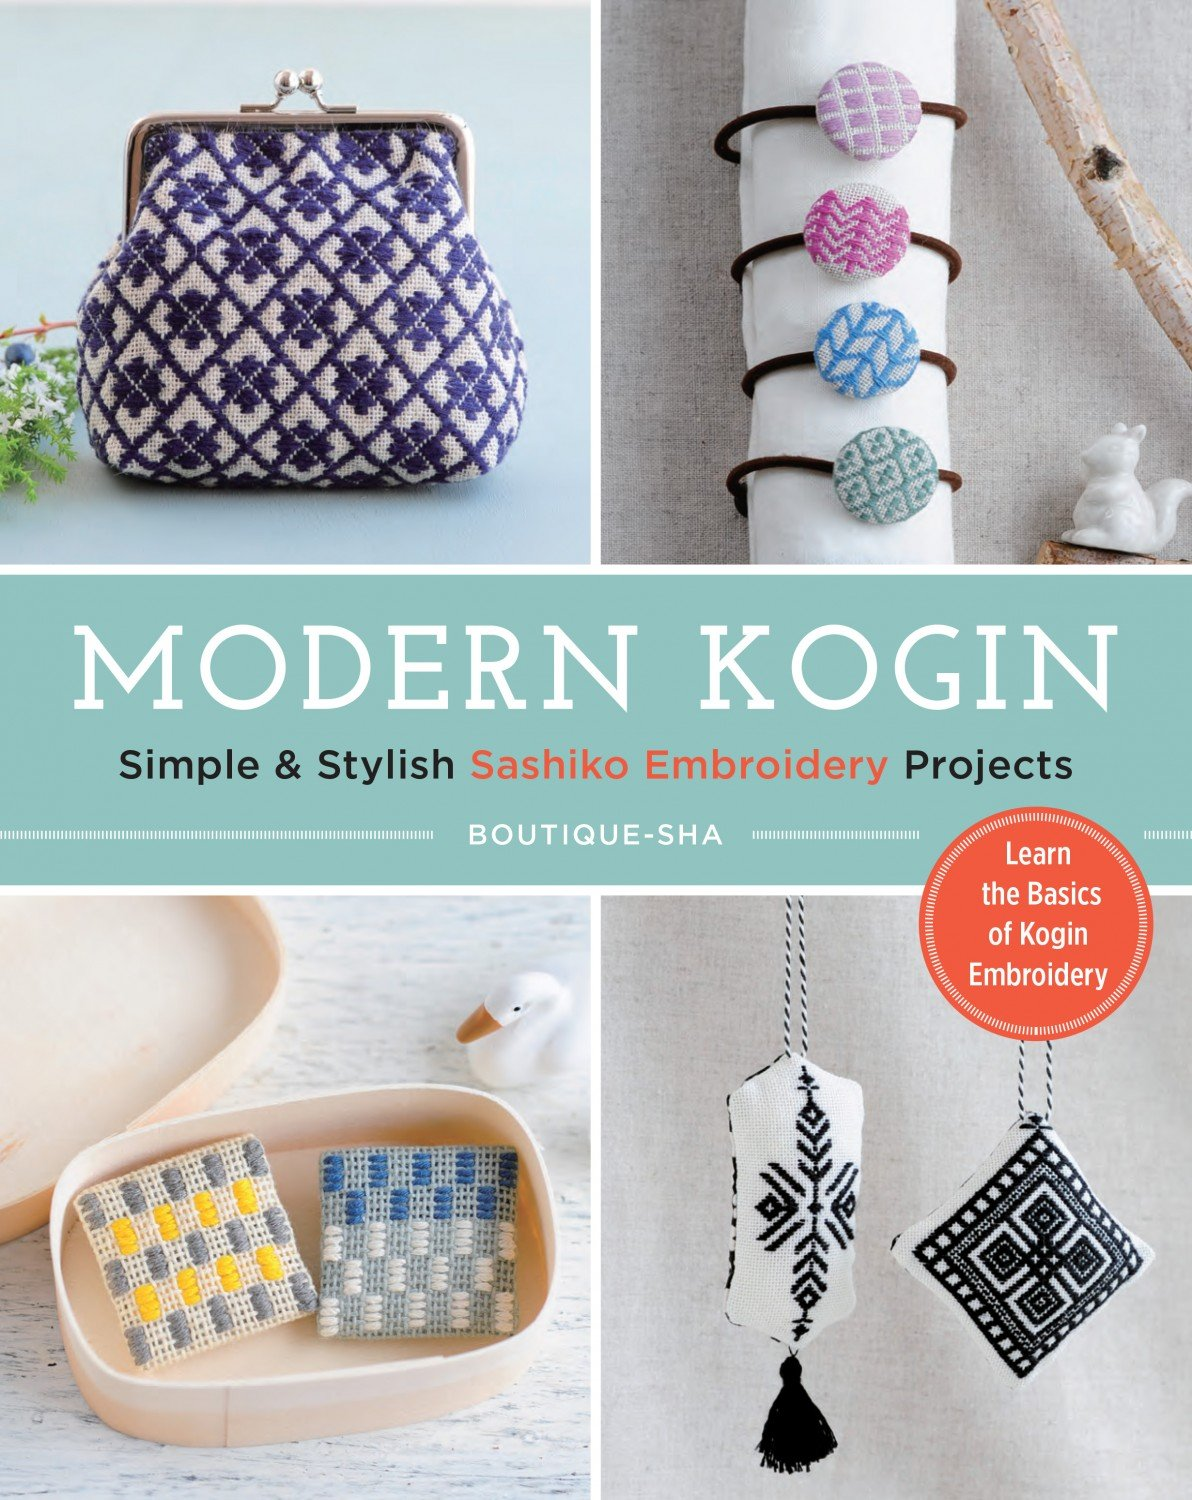 Book Modern Kogin: Simple & Stylish Sashiko Embroidery Projects